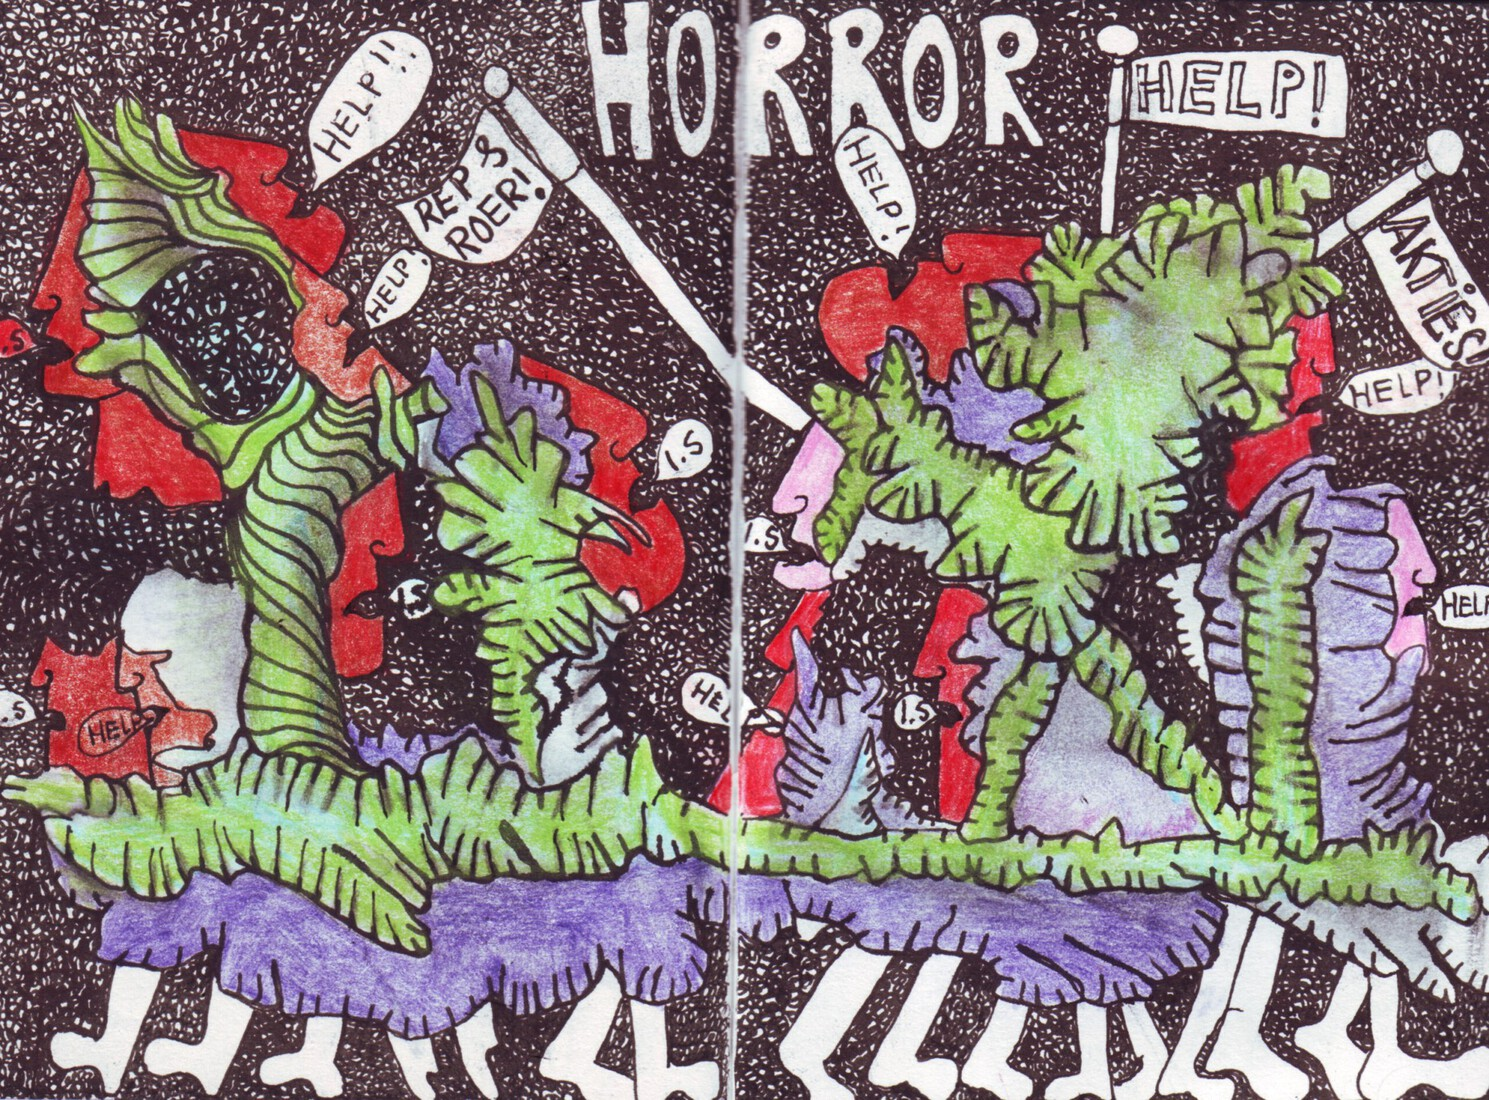 Outsiderart ; Coronacrisis ; They are fighting against a horror script!